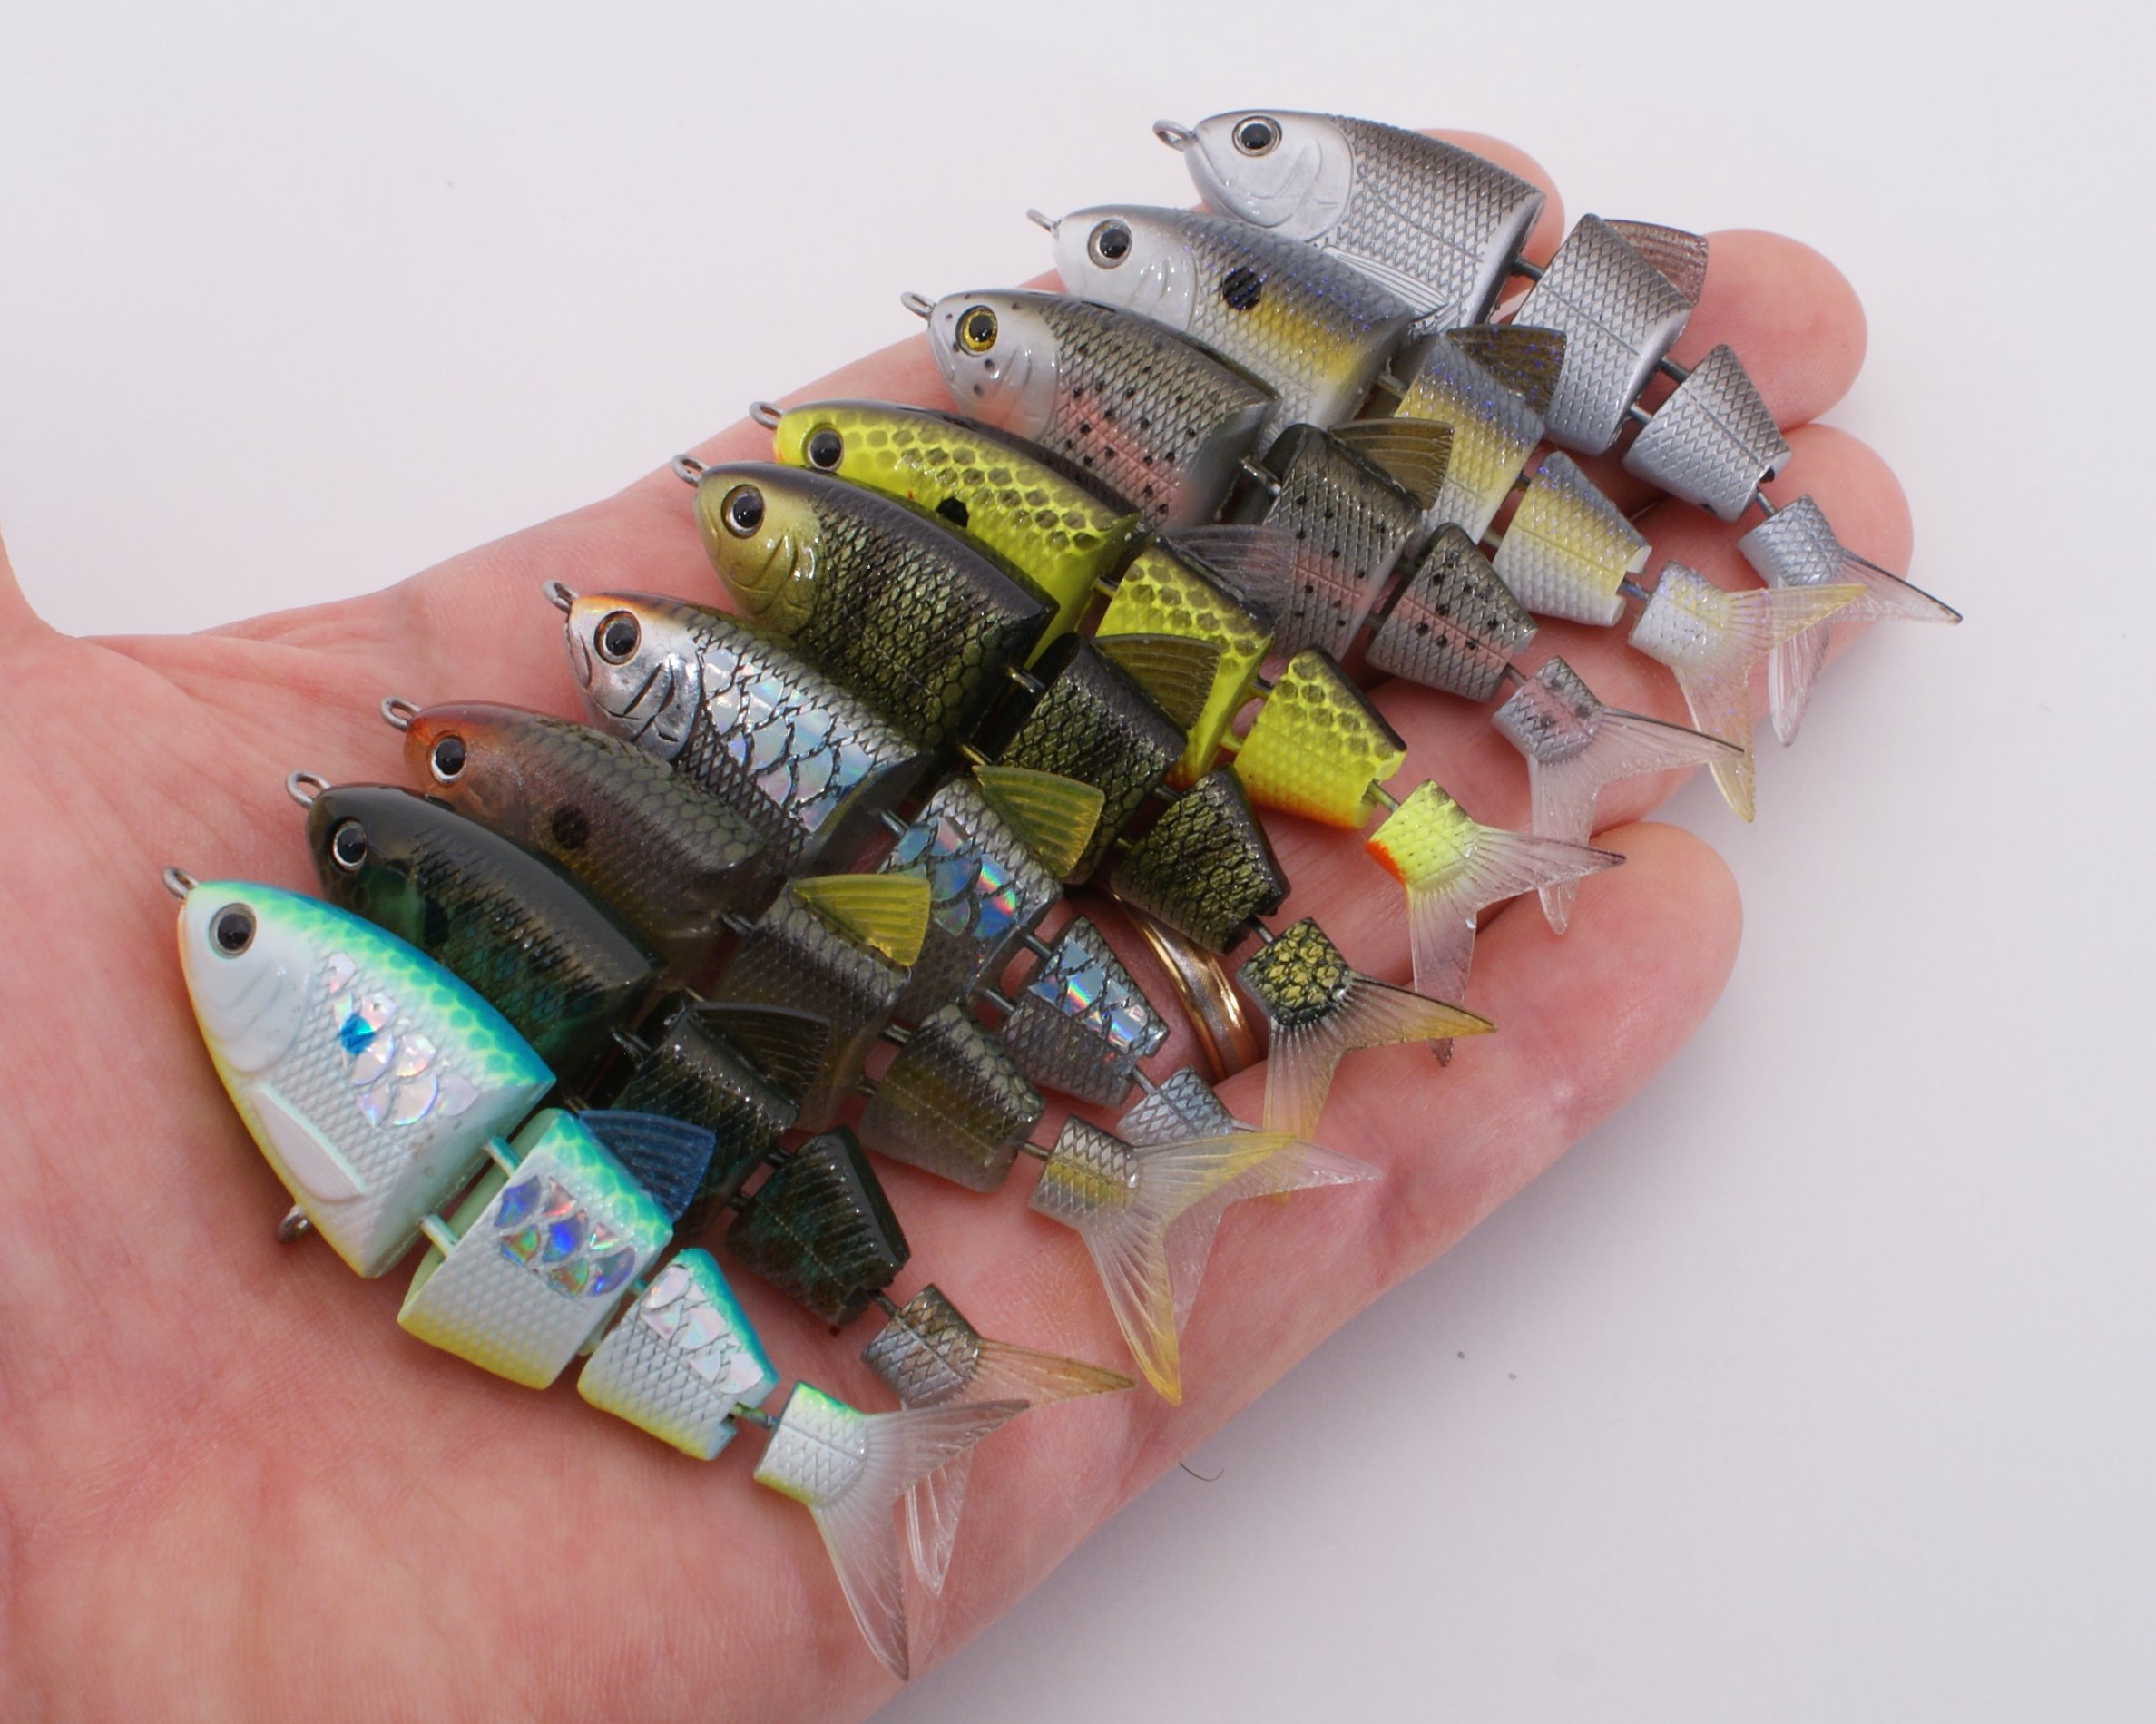 SPRO BBZ-1 Swimbaits are in the realm of Realism Baits